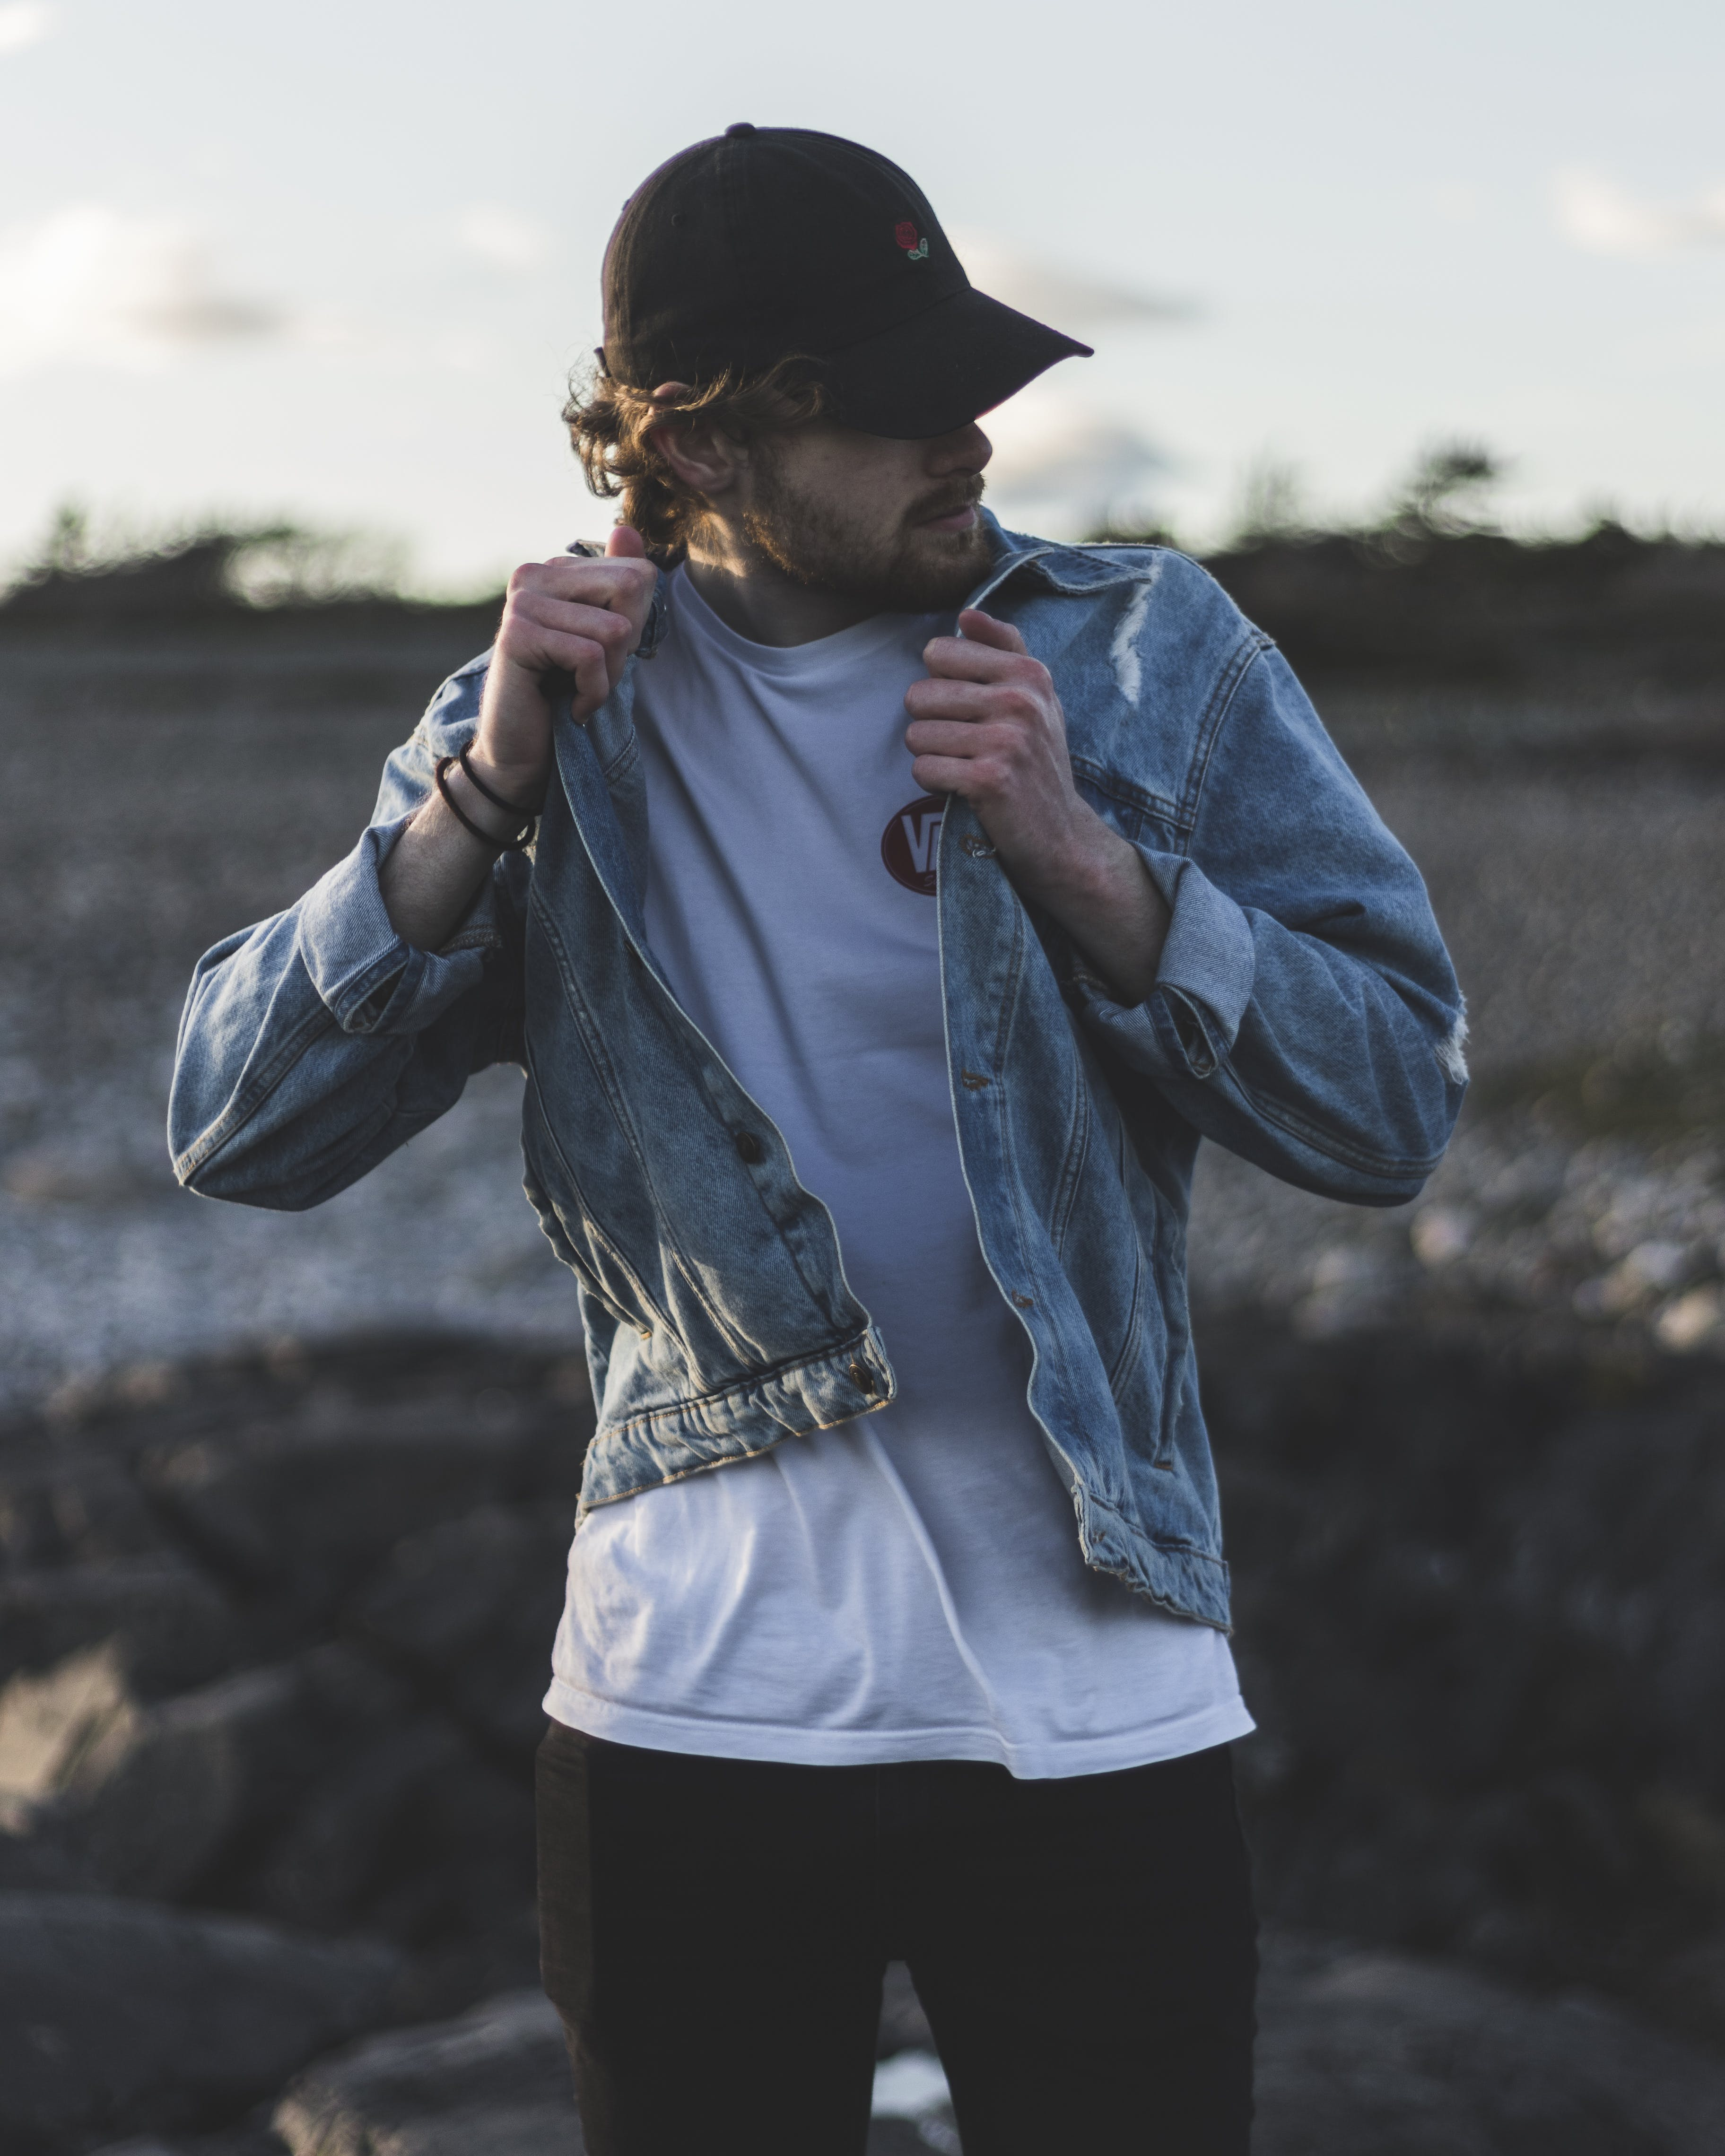 Man in Blue Denim Jacket, White Crew-neck Shirt and Black Pants